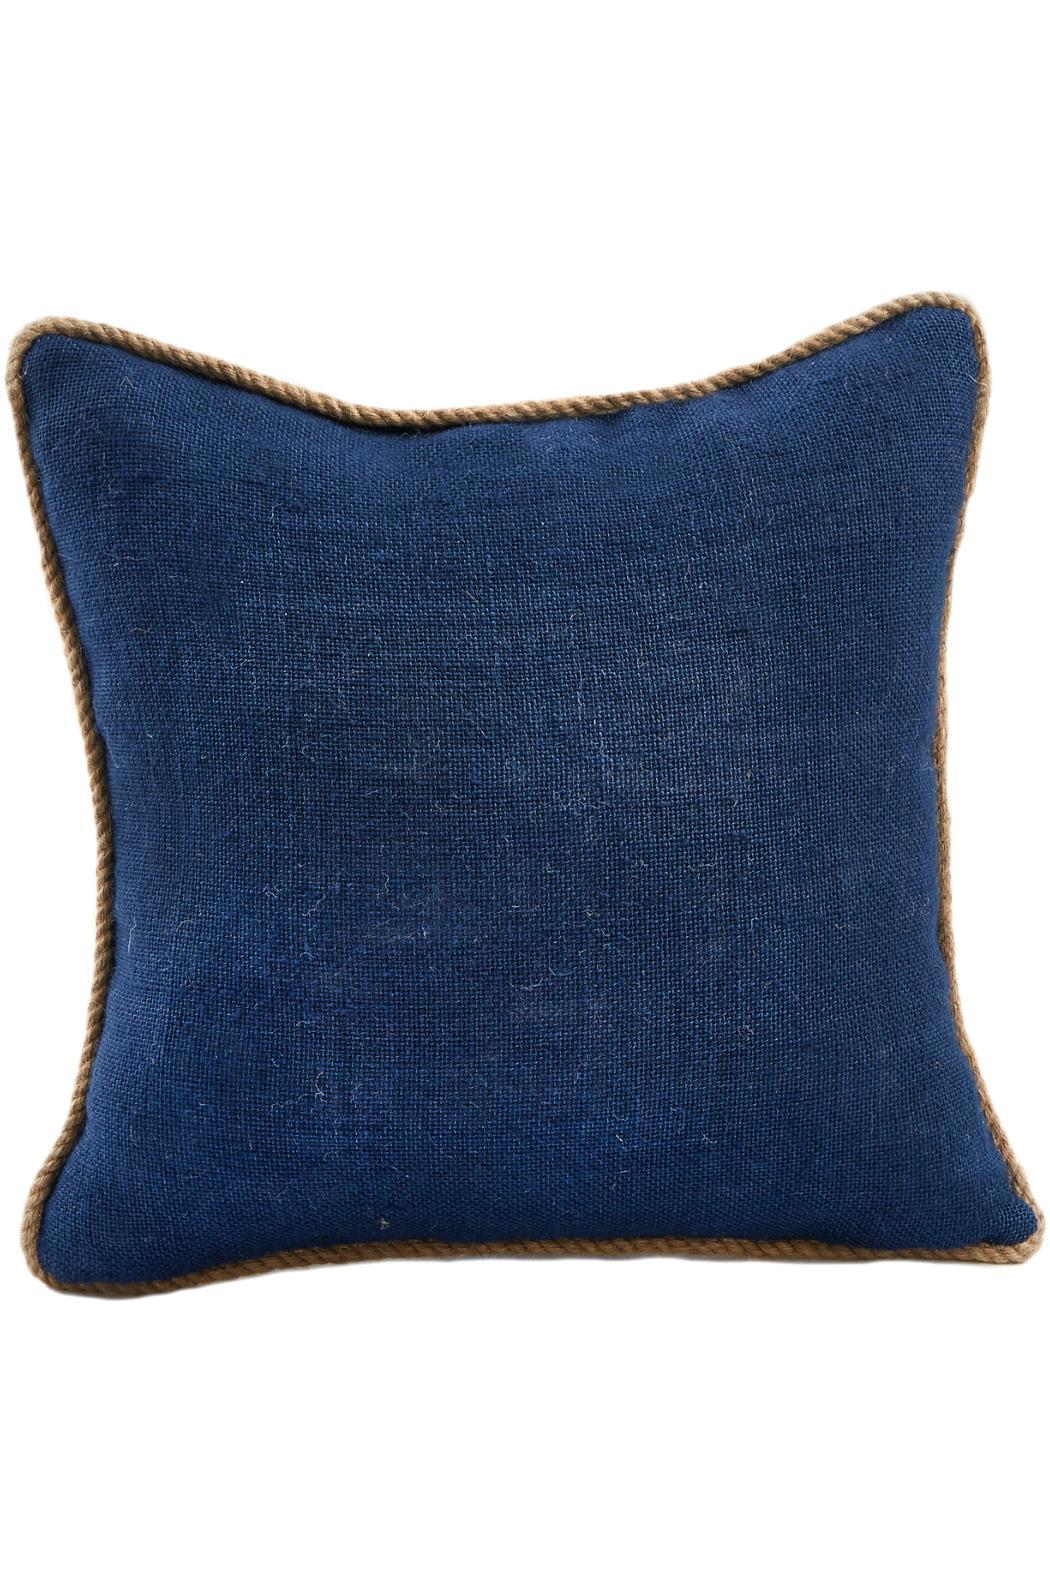 Mud Pie Navy Burlap Pillow - Front Cropped Image